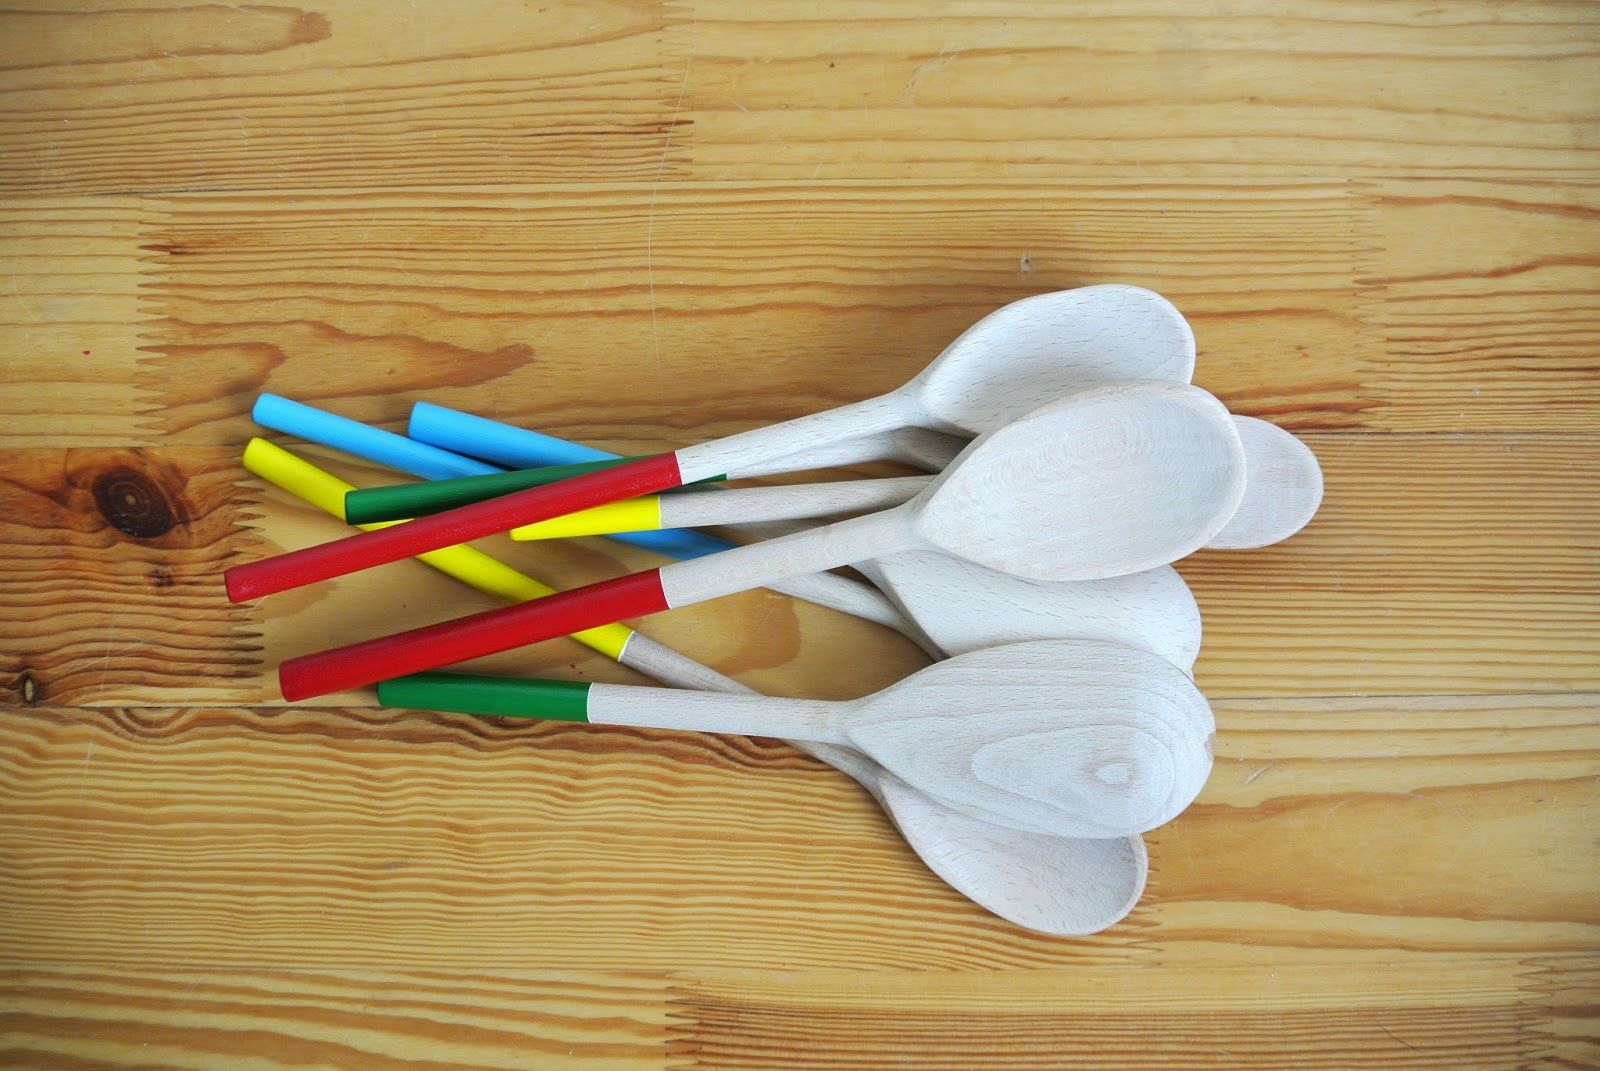 easy DIY project with kids presents homemade gifts painted wooden spoons